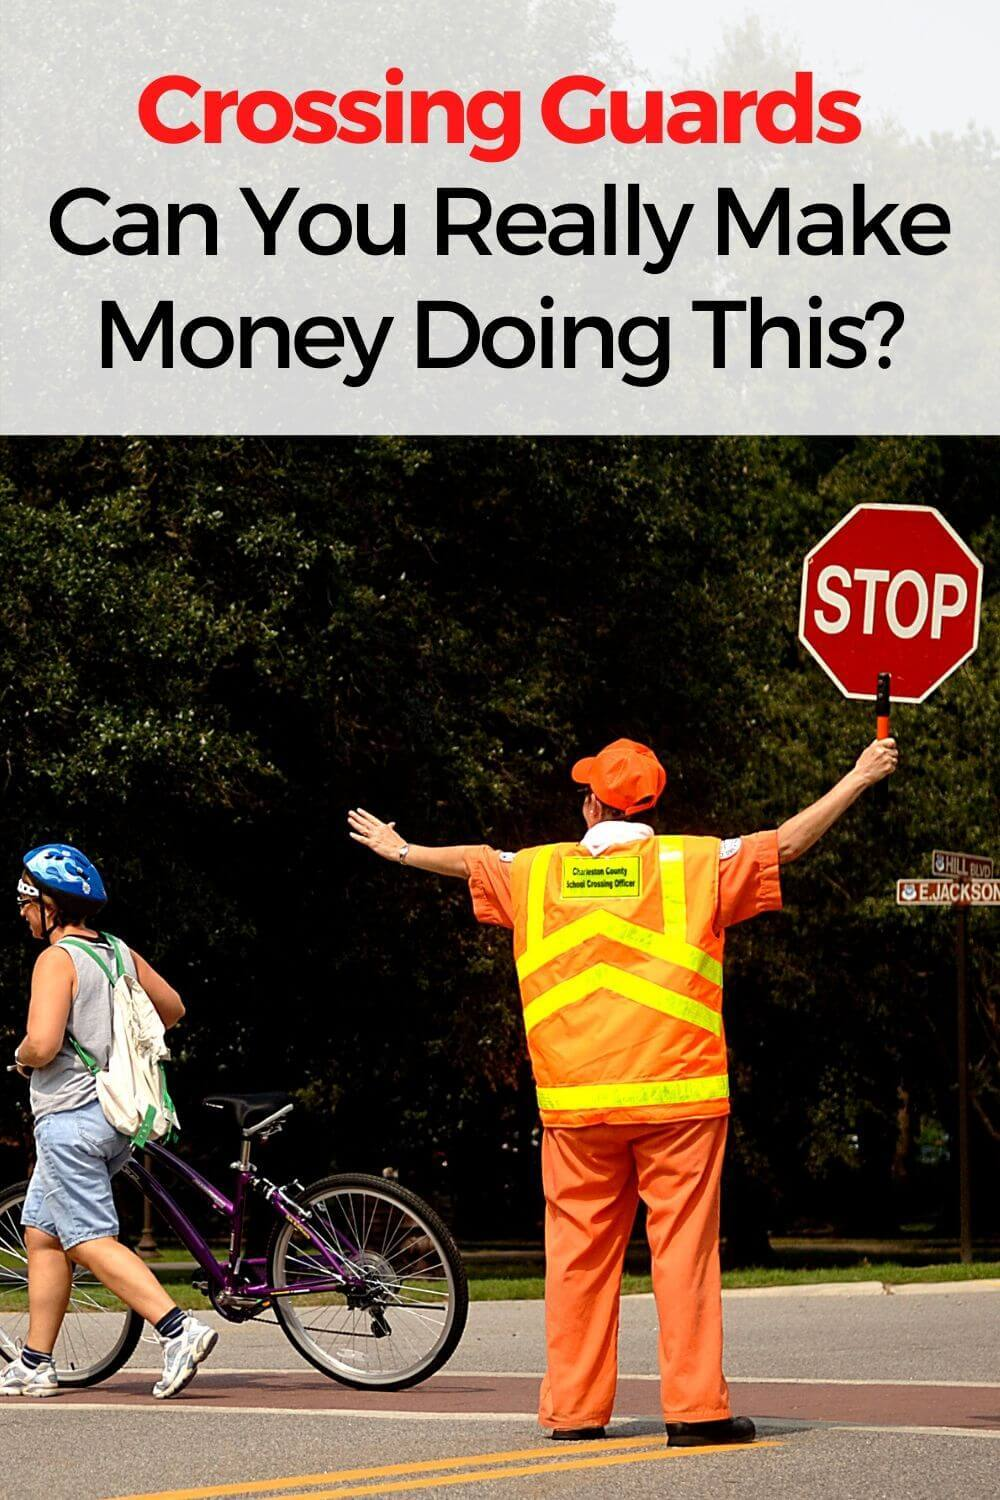 Crossing Guards - Can You Really Make Money Doing This?